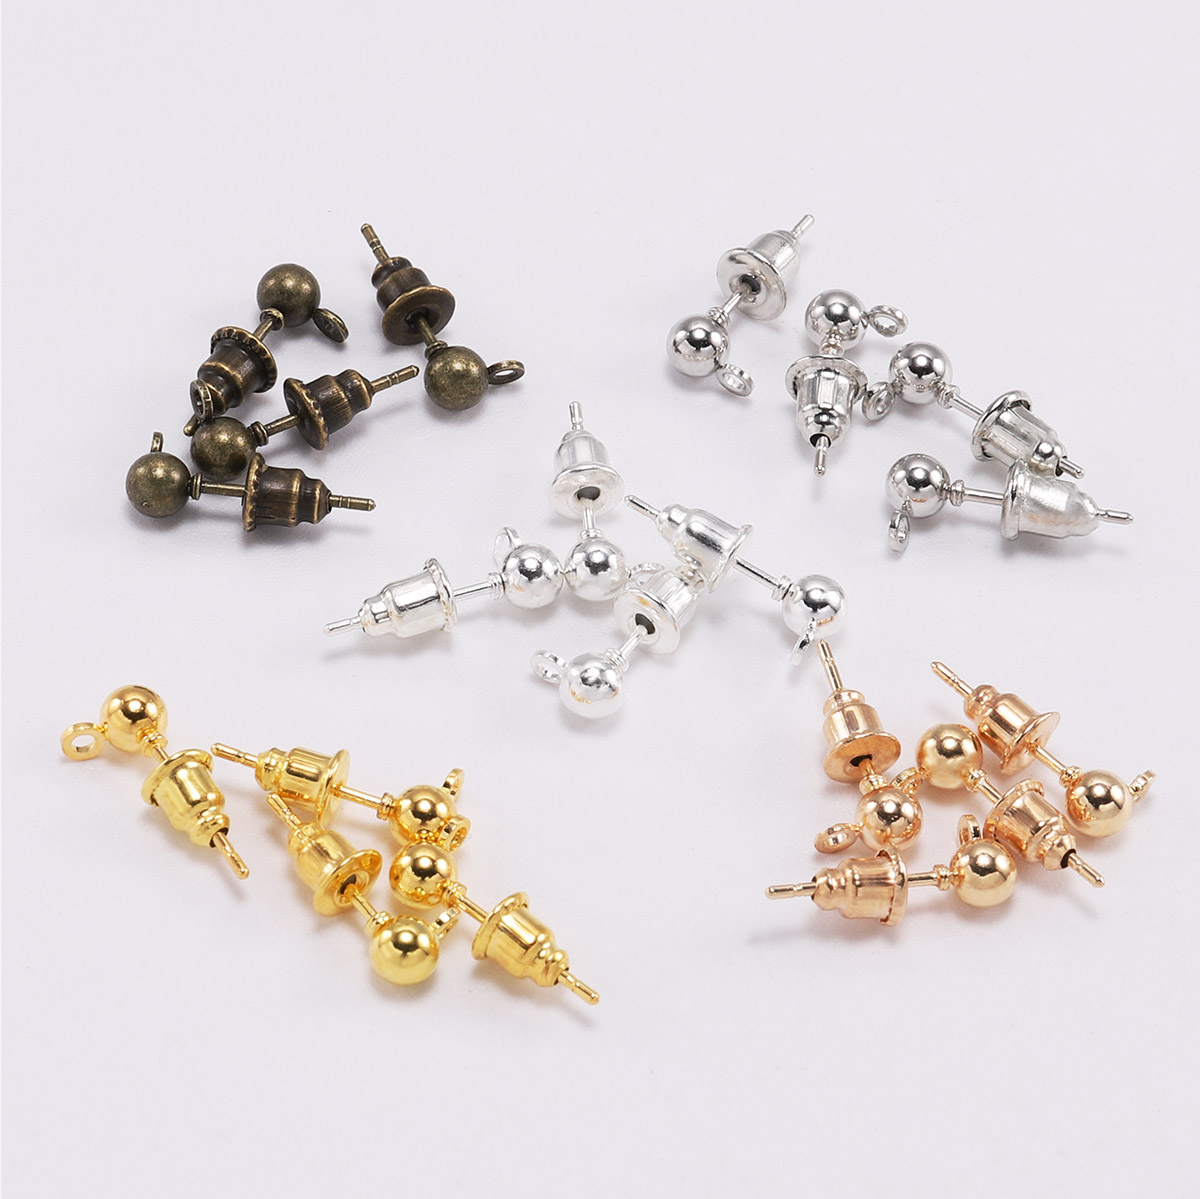 500Pcs Stainless Steel Flat Head Pins 23 Gauges Jewelry Making Head Pins 1.49 for Beading Charm DIY Craft